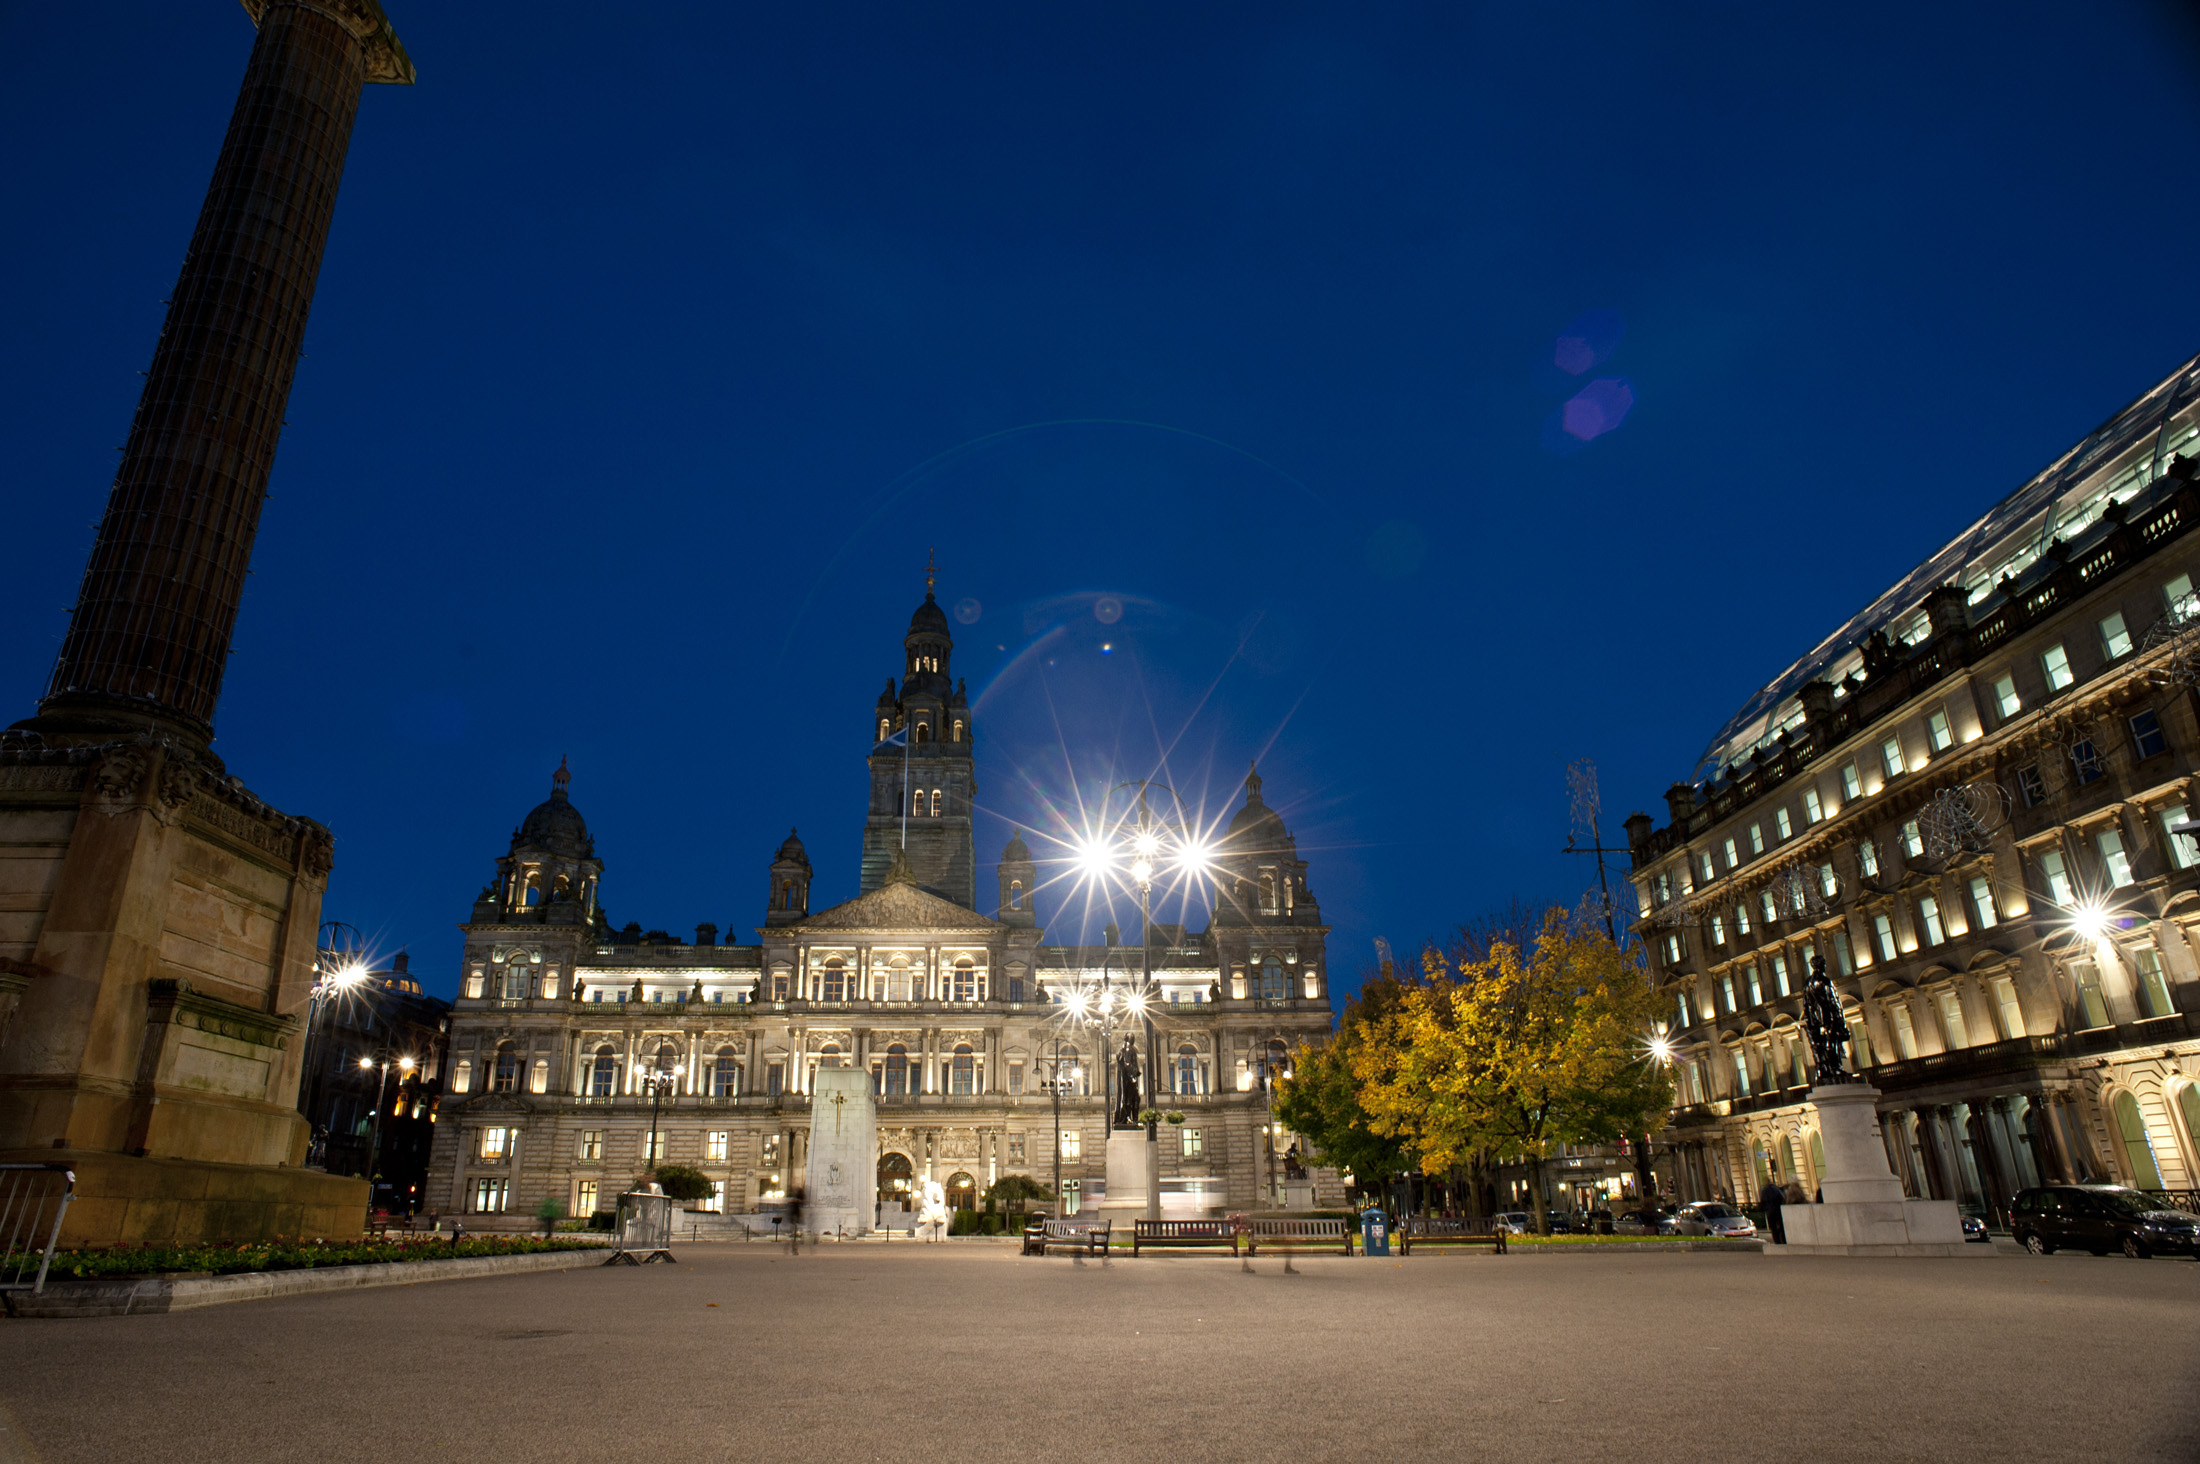 Night view of George Square, Glasgow, which is the principal civic square in the city named after King George III and today is the headquarters of the City Council